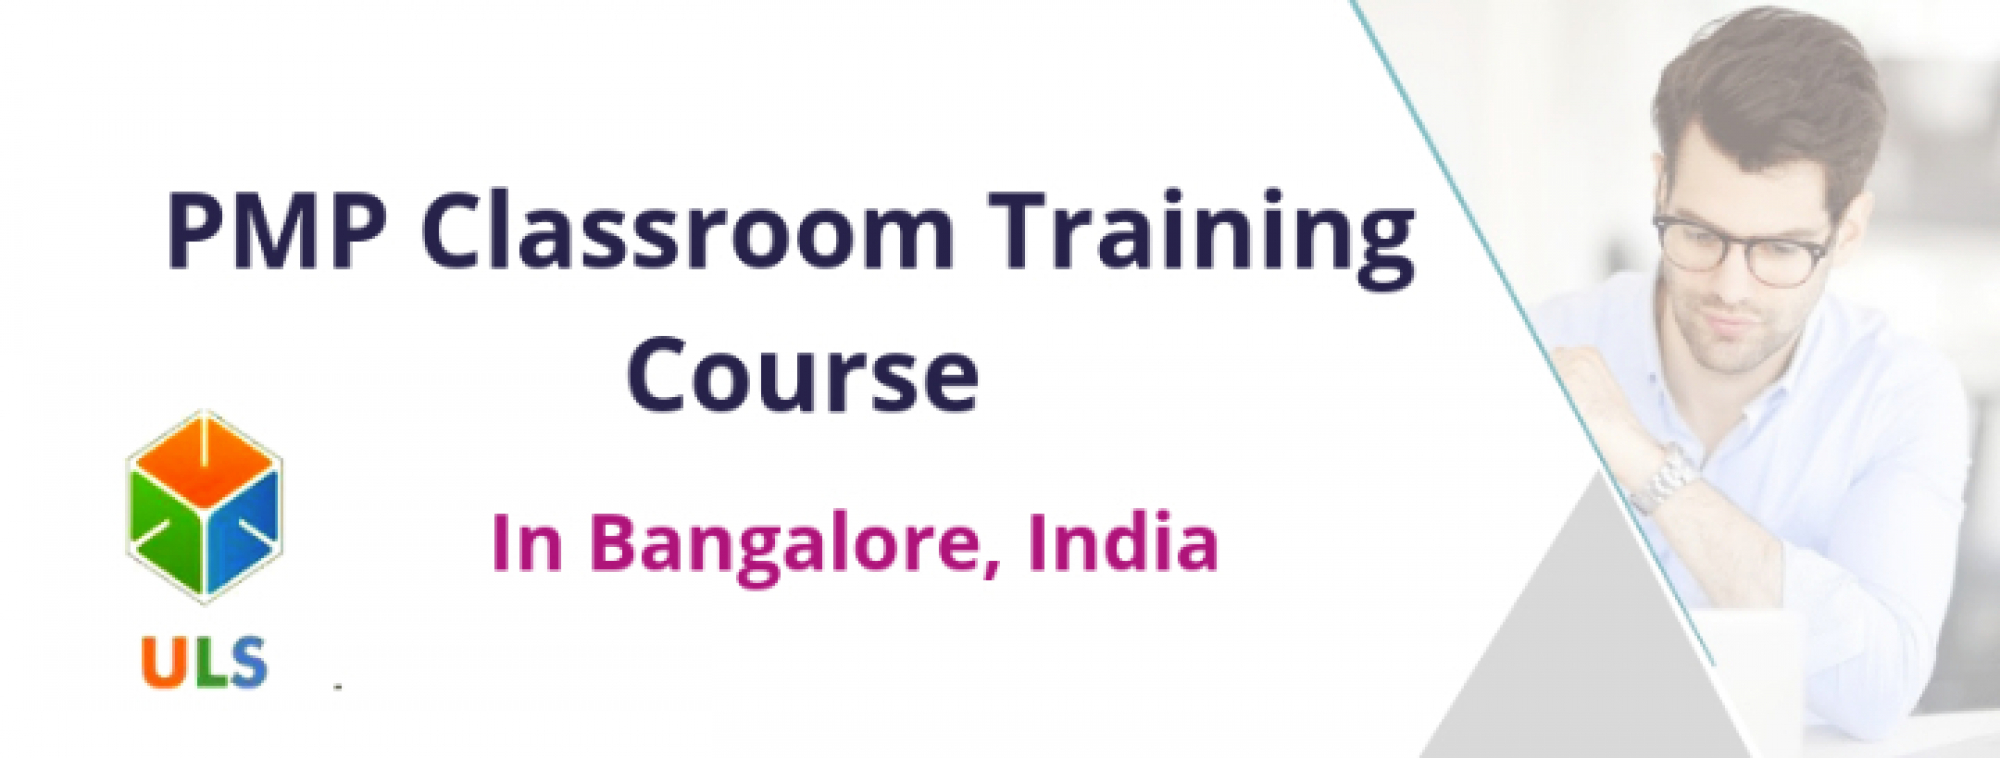 Pmp Certification Training Course In Bengaluru India 23 Mar 2019